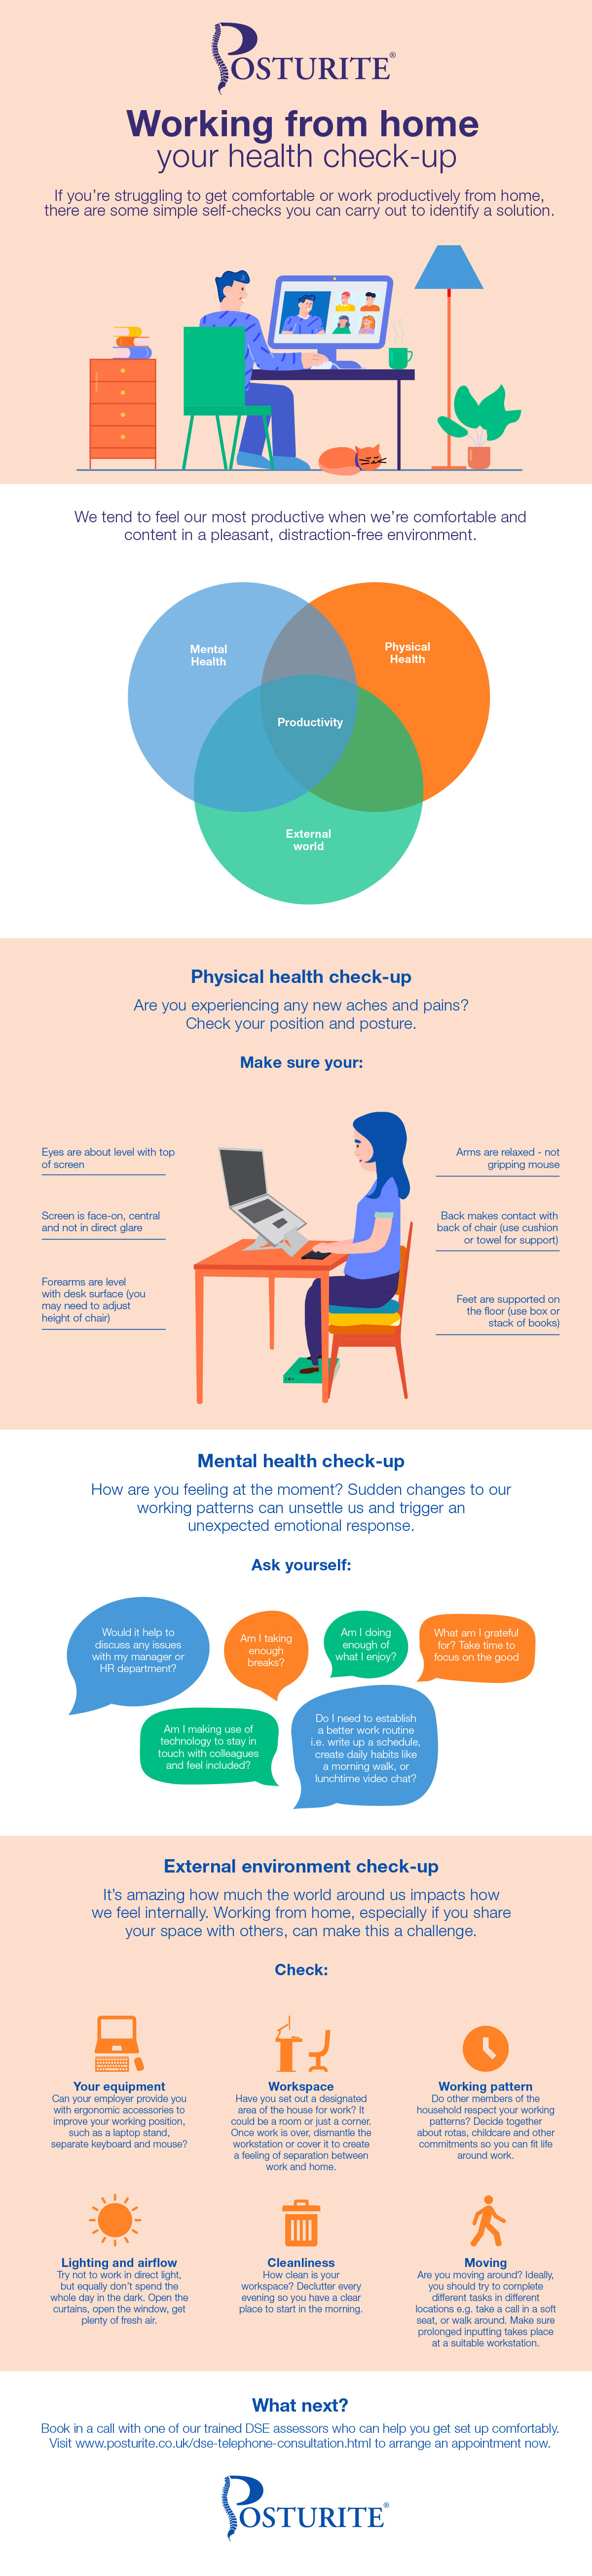 'Working from home - your health check up' infographic, which links to the downloadable PDF